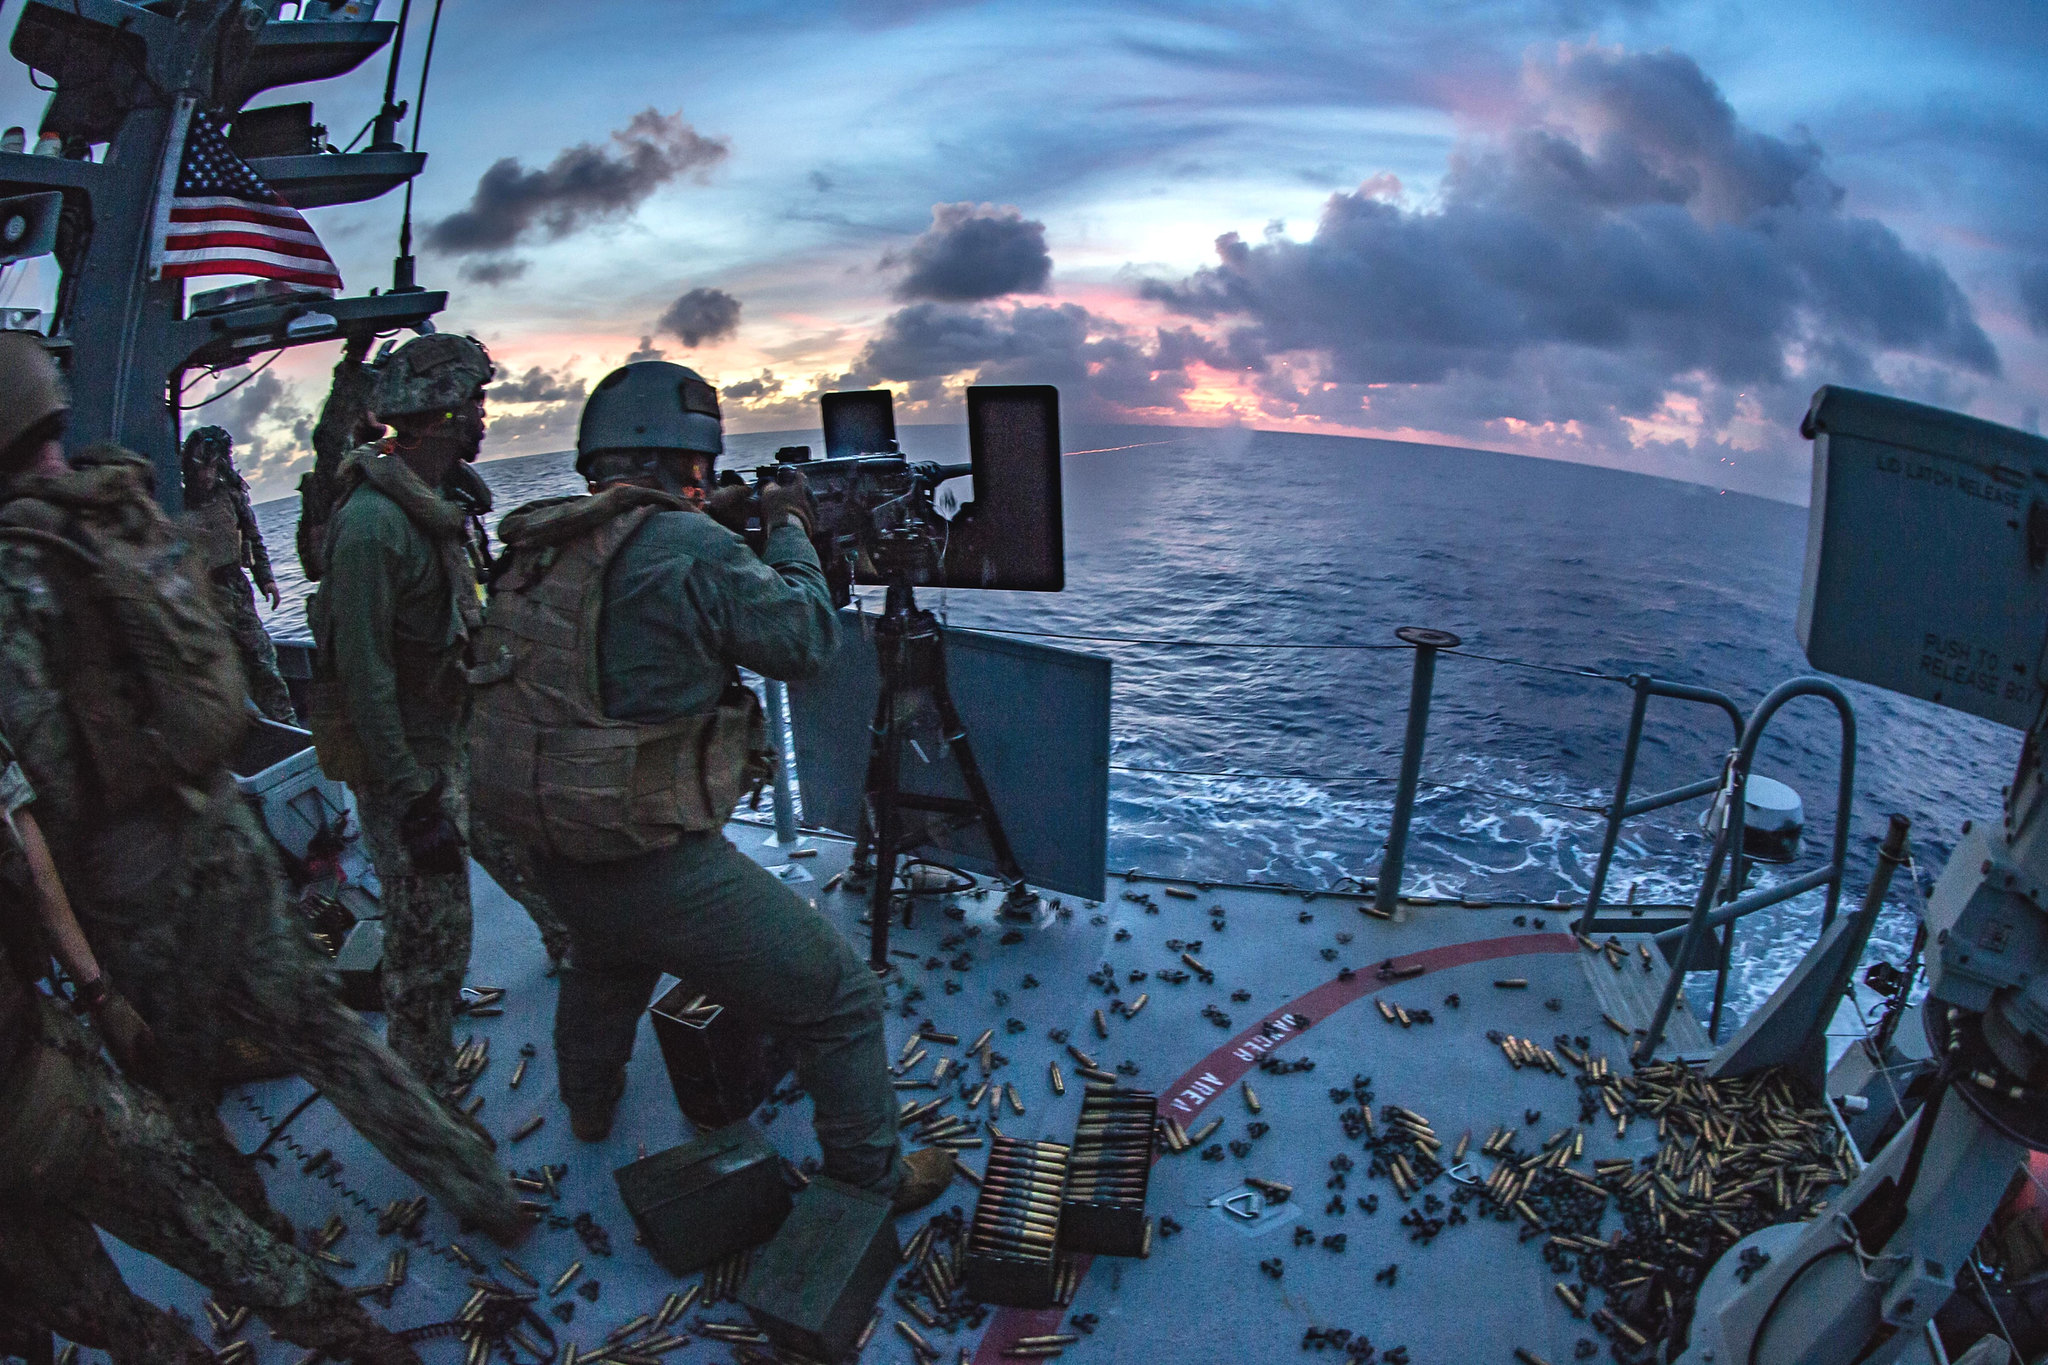 A sailor fires an M2 .50-caliber machine gun on a Mark VI patrol boat during a live-fire exercise in the Philippine Sea, Feb. 27, 2021. (Lance Cpl. Brienna Tuck/Marine Corps)